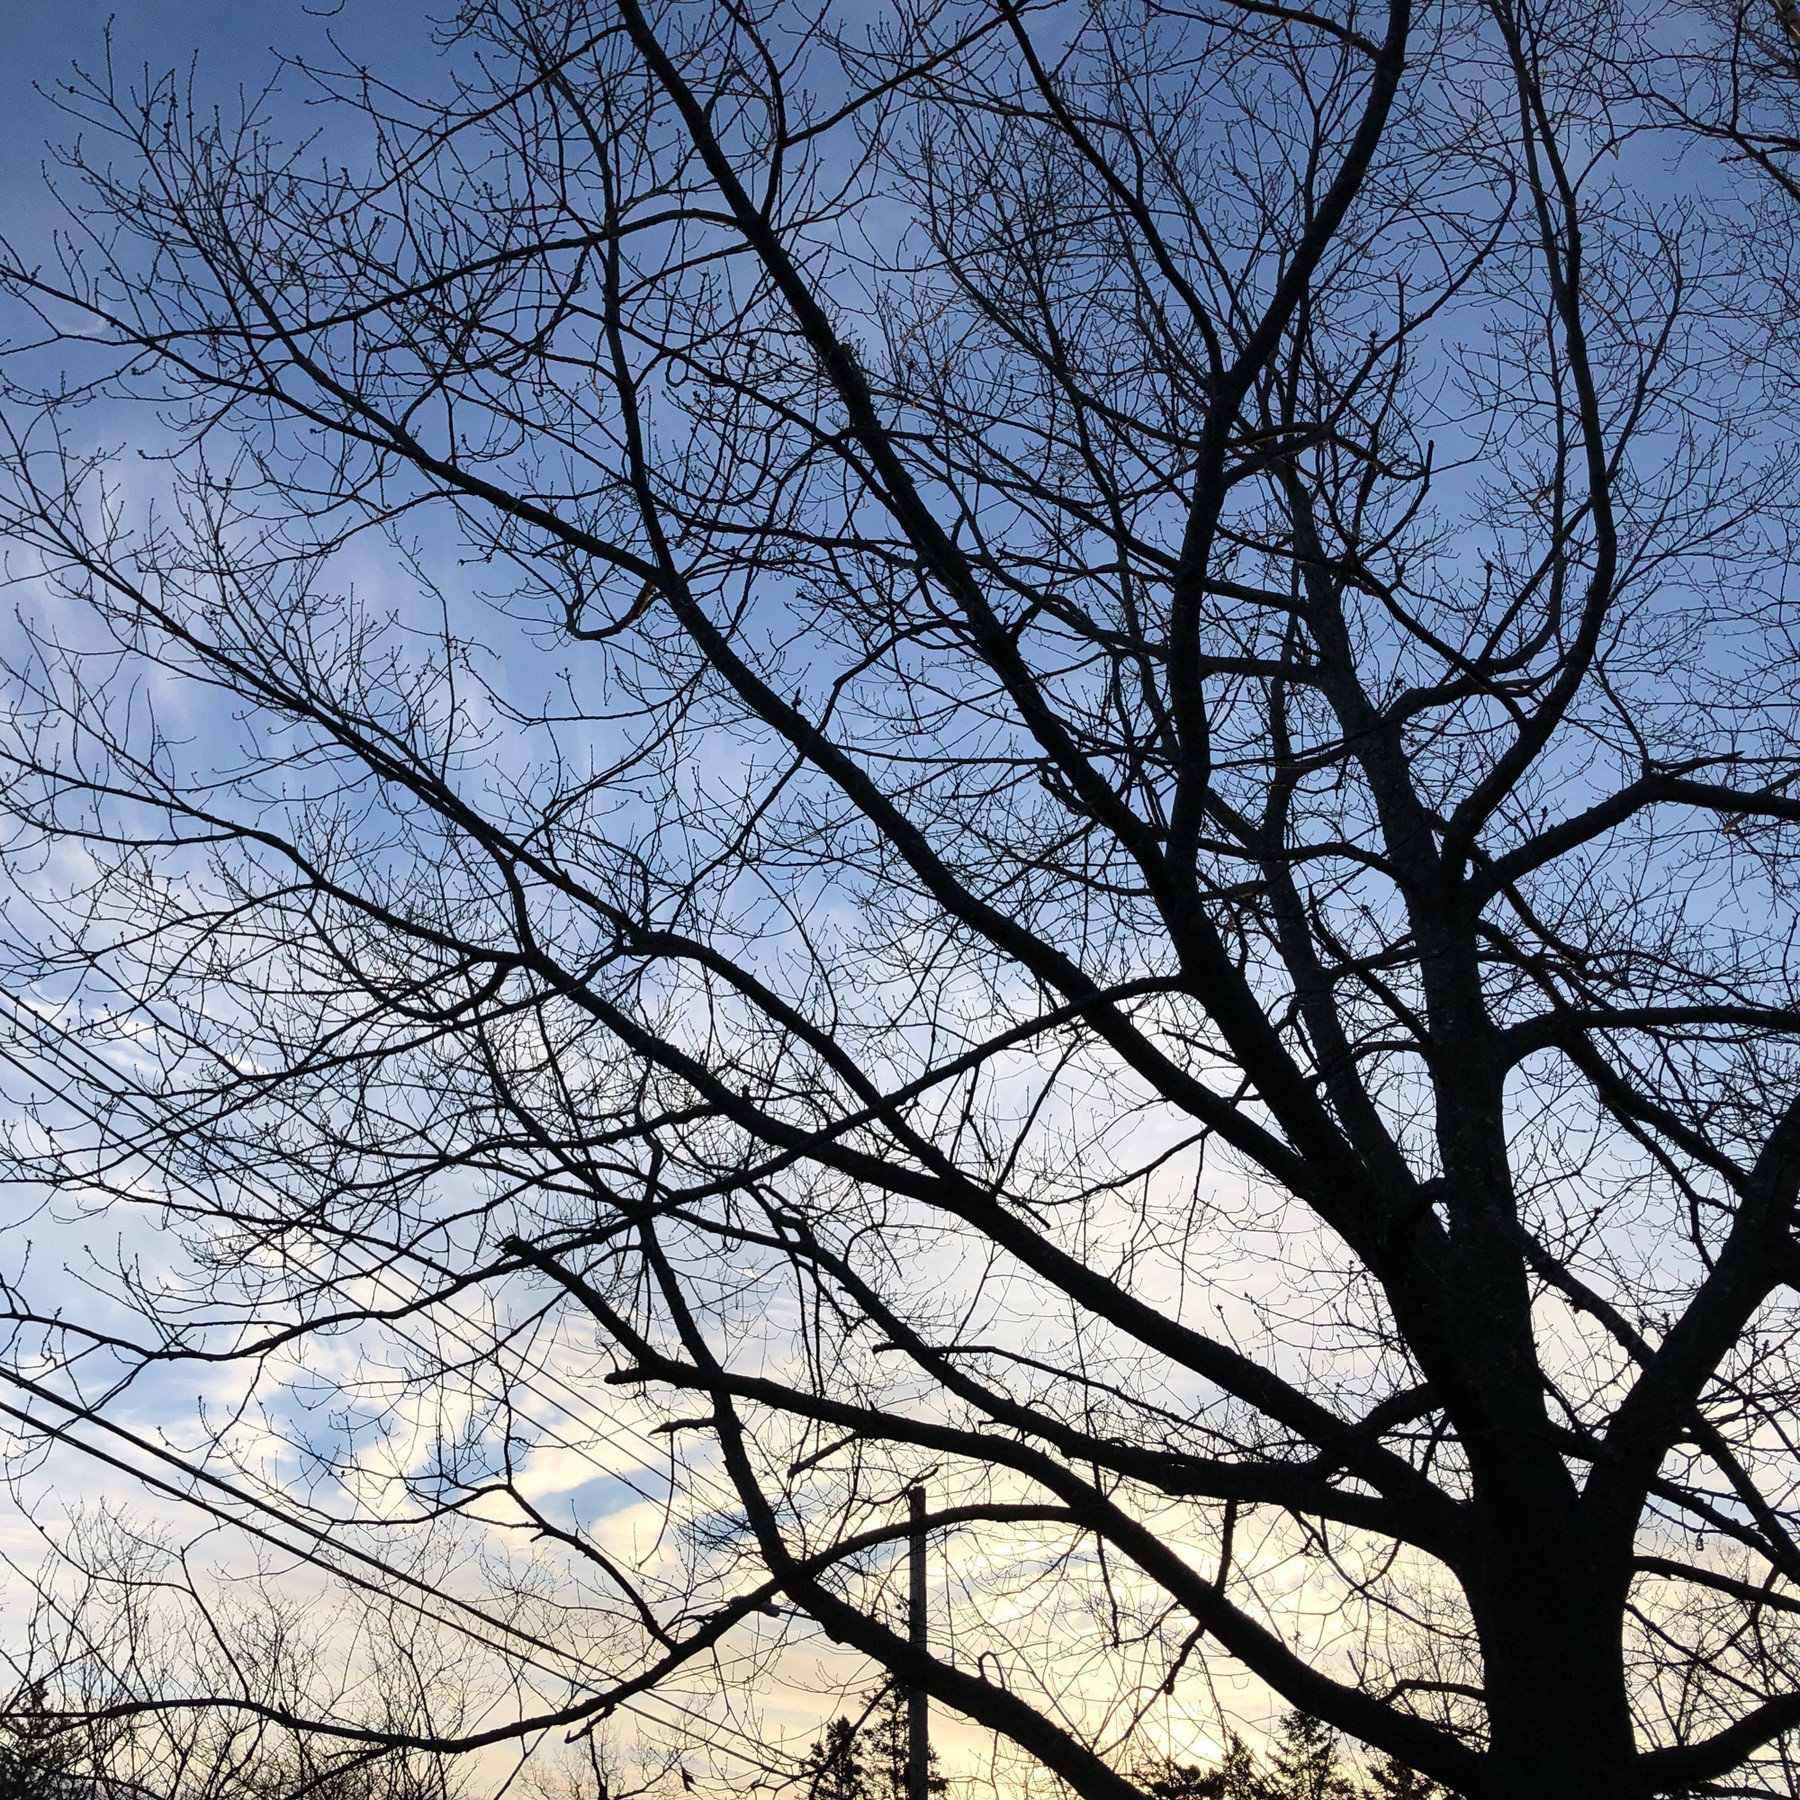 Tree branches and sky.